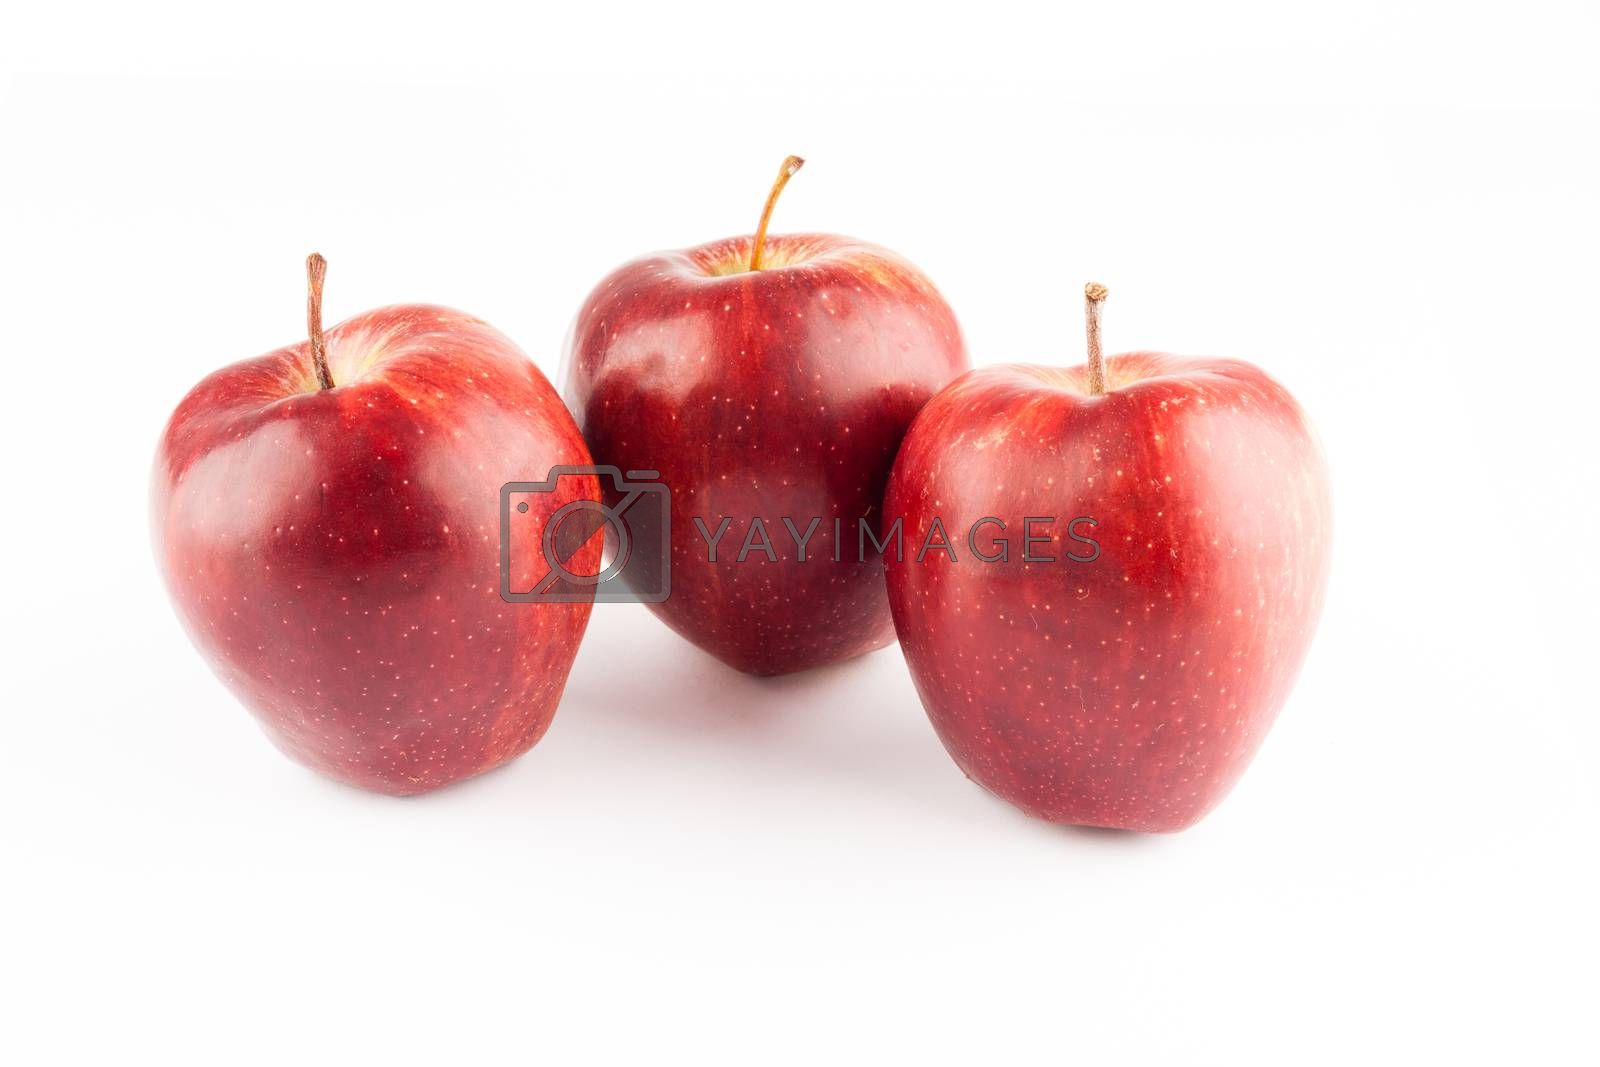 Royalty free image of apples by furo_felix